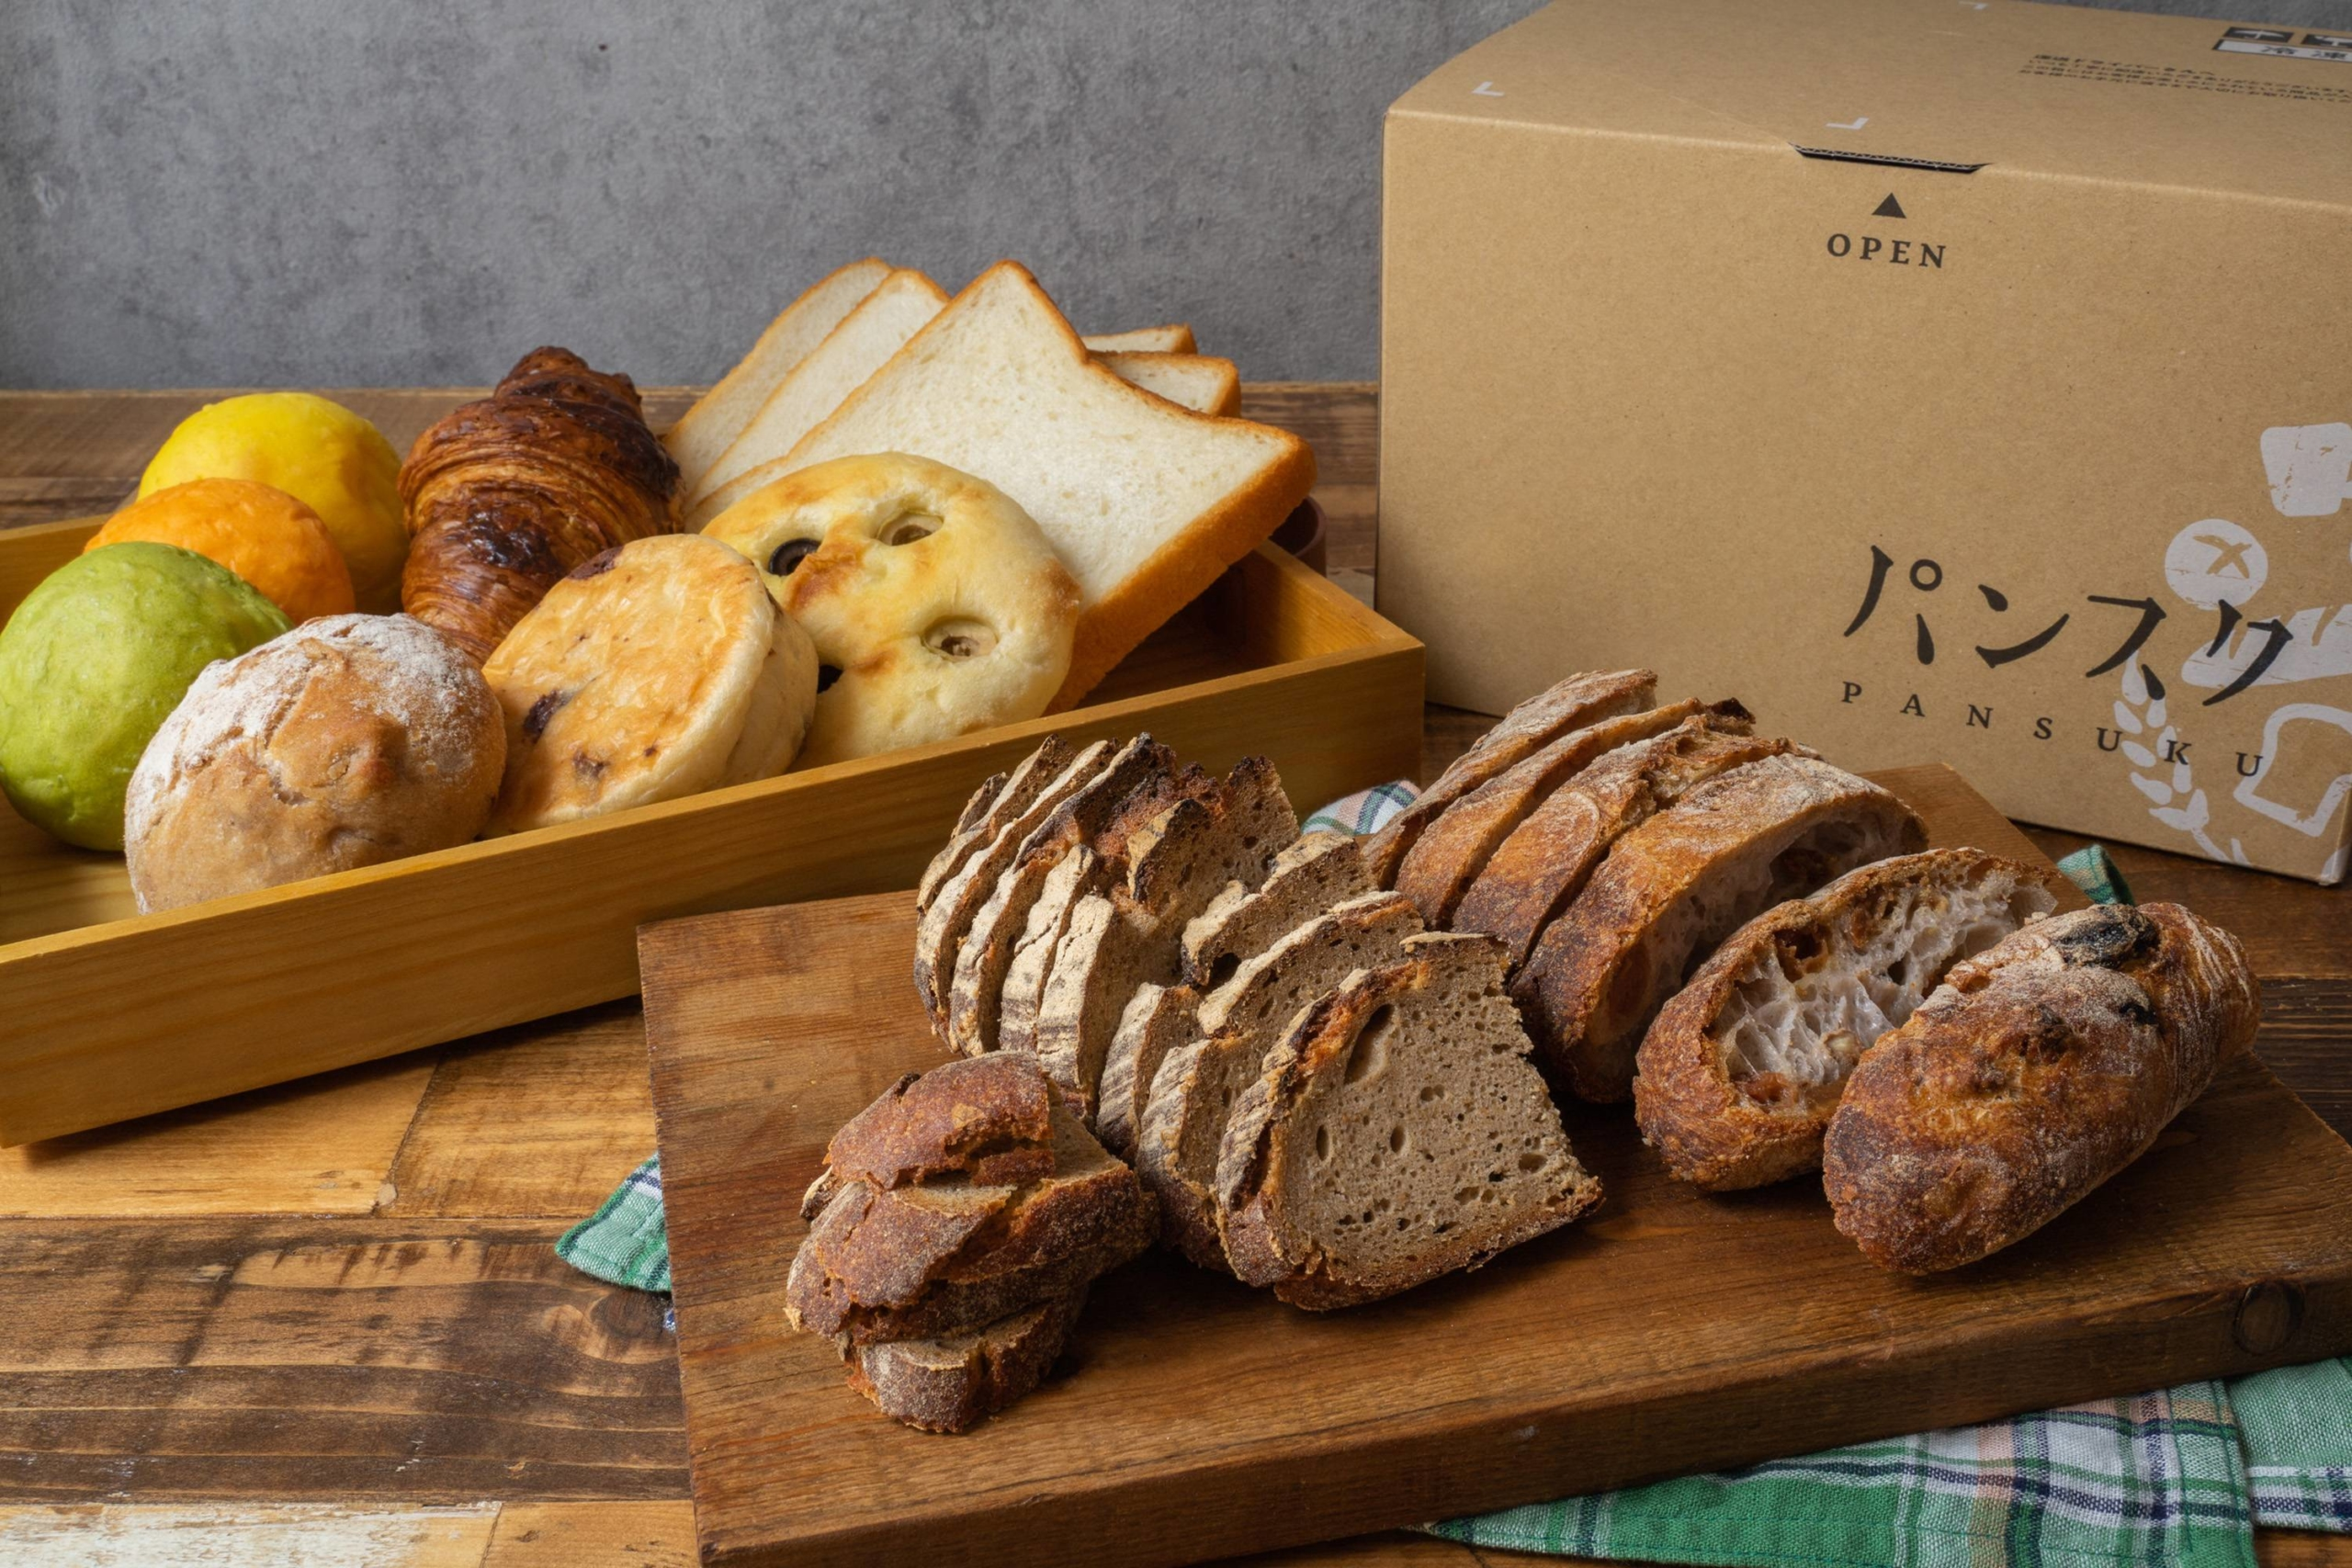 Pan For You is a startup based in Gunma Prefecture that delivers gourmet bread produced by a selection of bakeries for a set monthly fee.